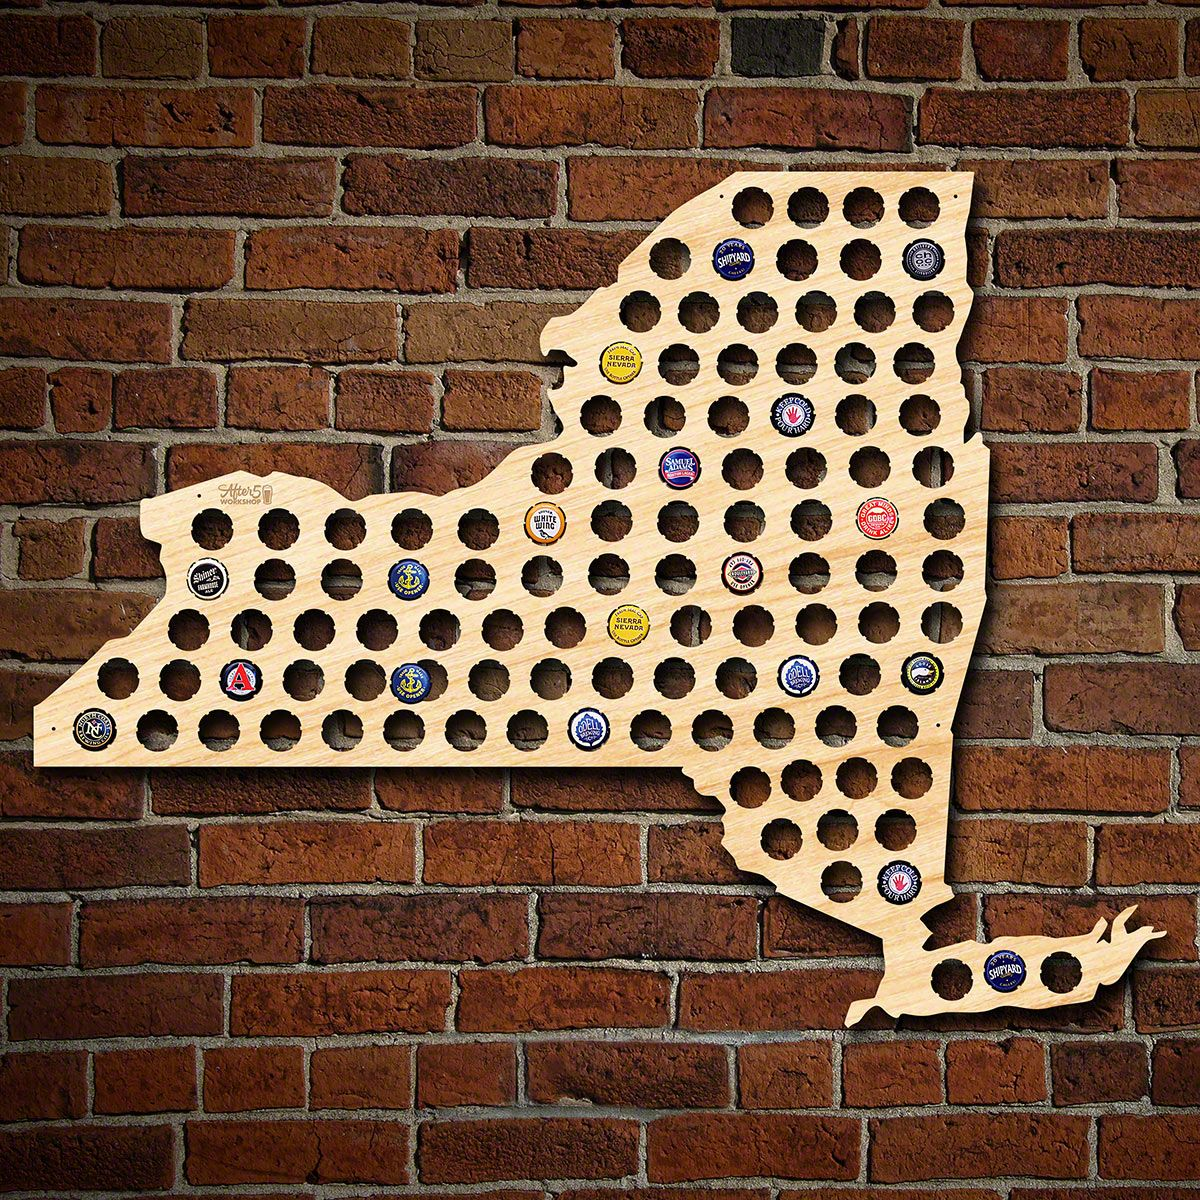 Giant XL New York Beer Cap Map